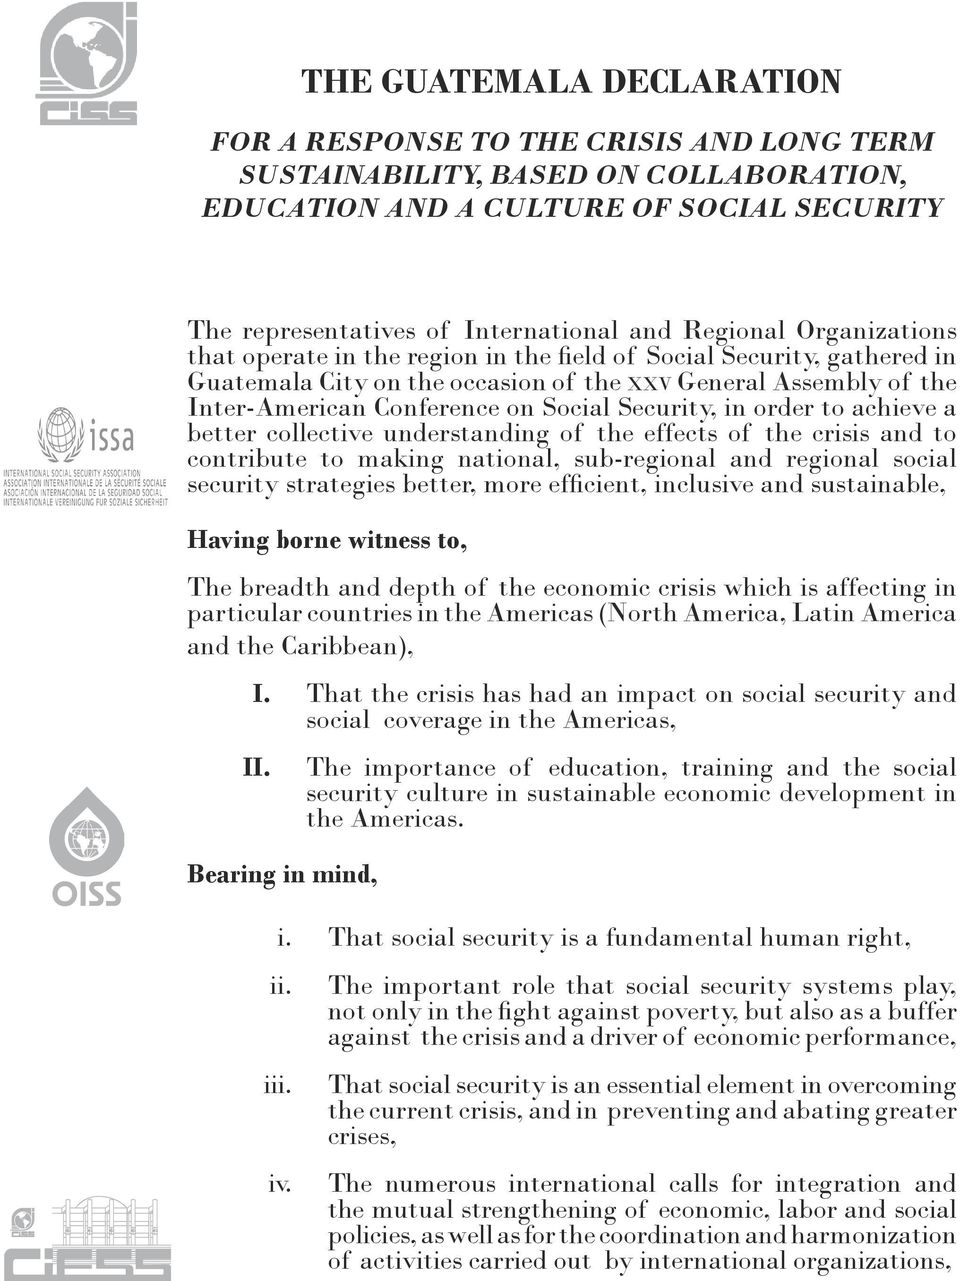 Security, in order to achieve a better collective understanding of the effects of the crisis and to contribute to making national, sub-regional and regional social security strategies better, more